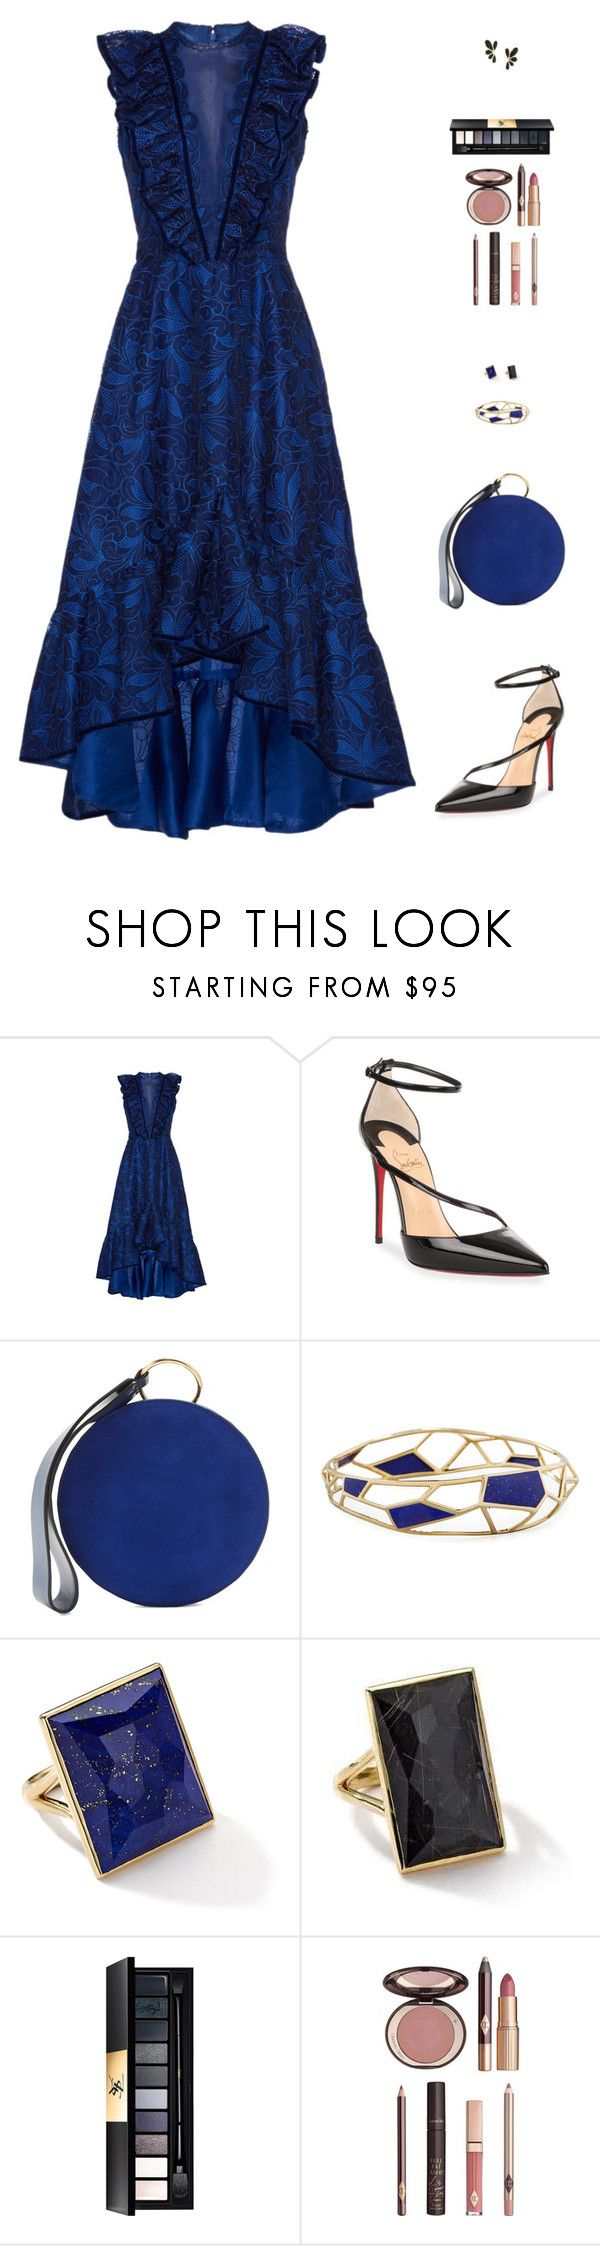 """""""Untitled #5058"""" by mdmsb on Polyvore featuring Costarellos, Christian Louboutin, Diane Von Furstenberg, Ippolita, Yves Saint Laurent and Charlotte Tilbury"""